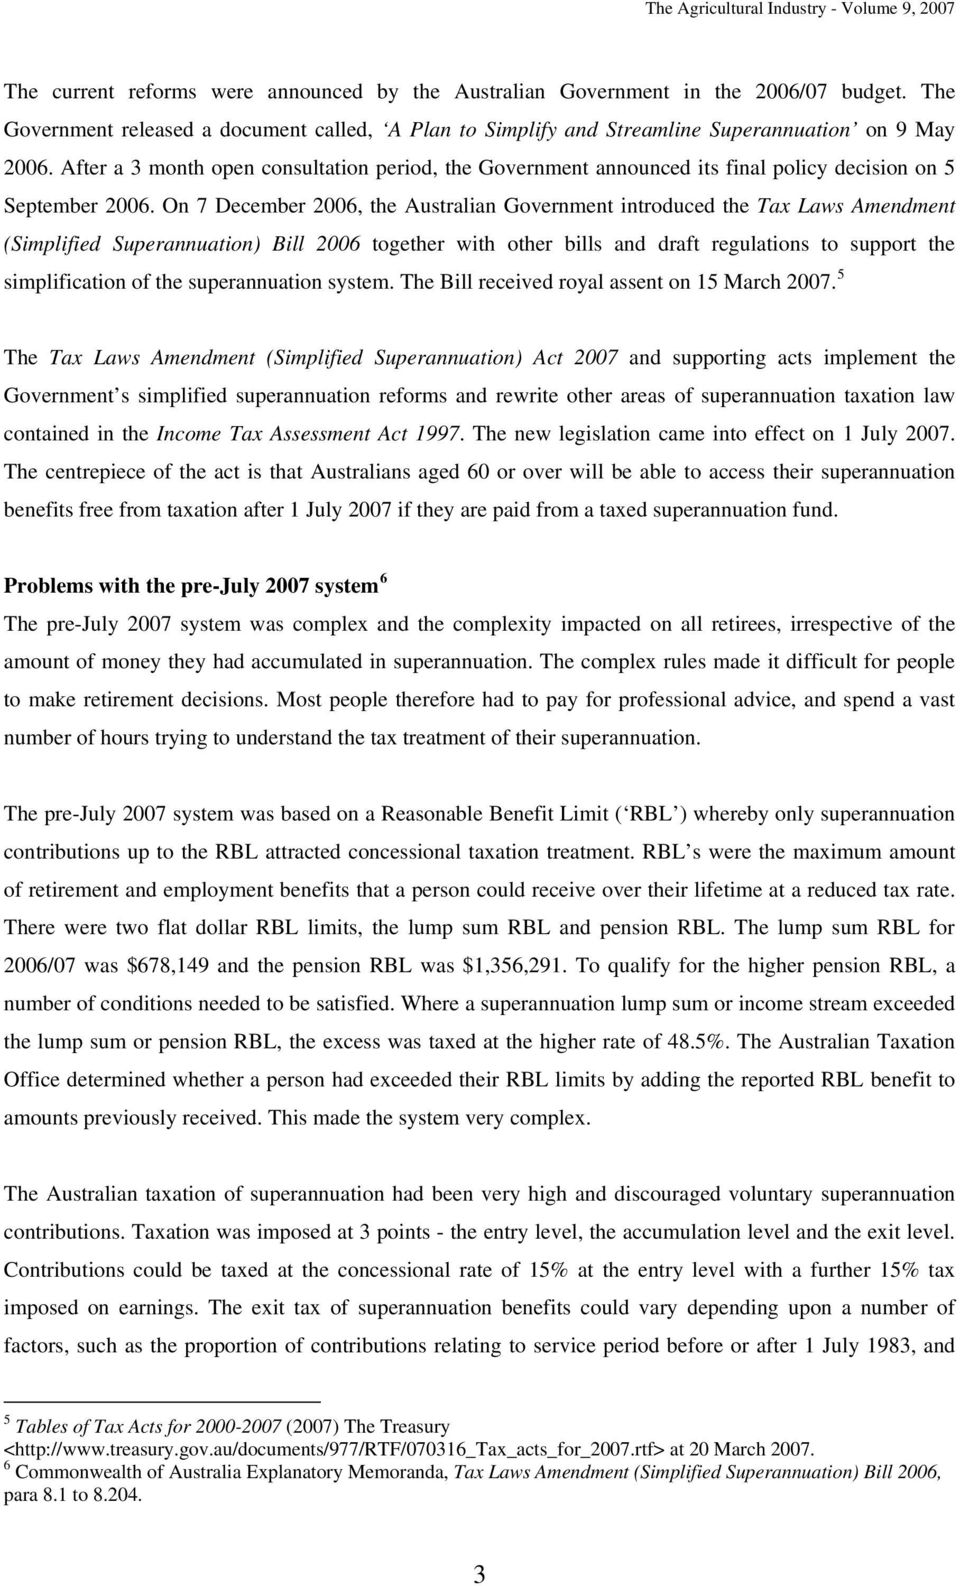 On 7 December 2006, the Australian Government introduced the Tax Laws Amendment (Simplified Superannuation) Bill 2006 together with other bills and draft regulations to support the simplification of